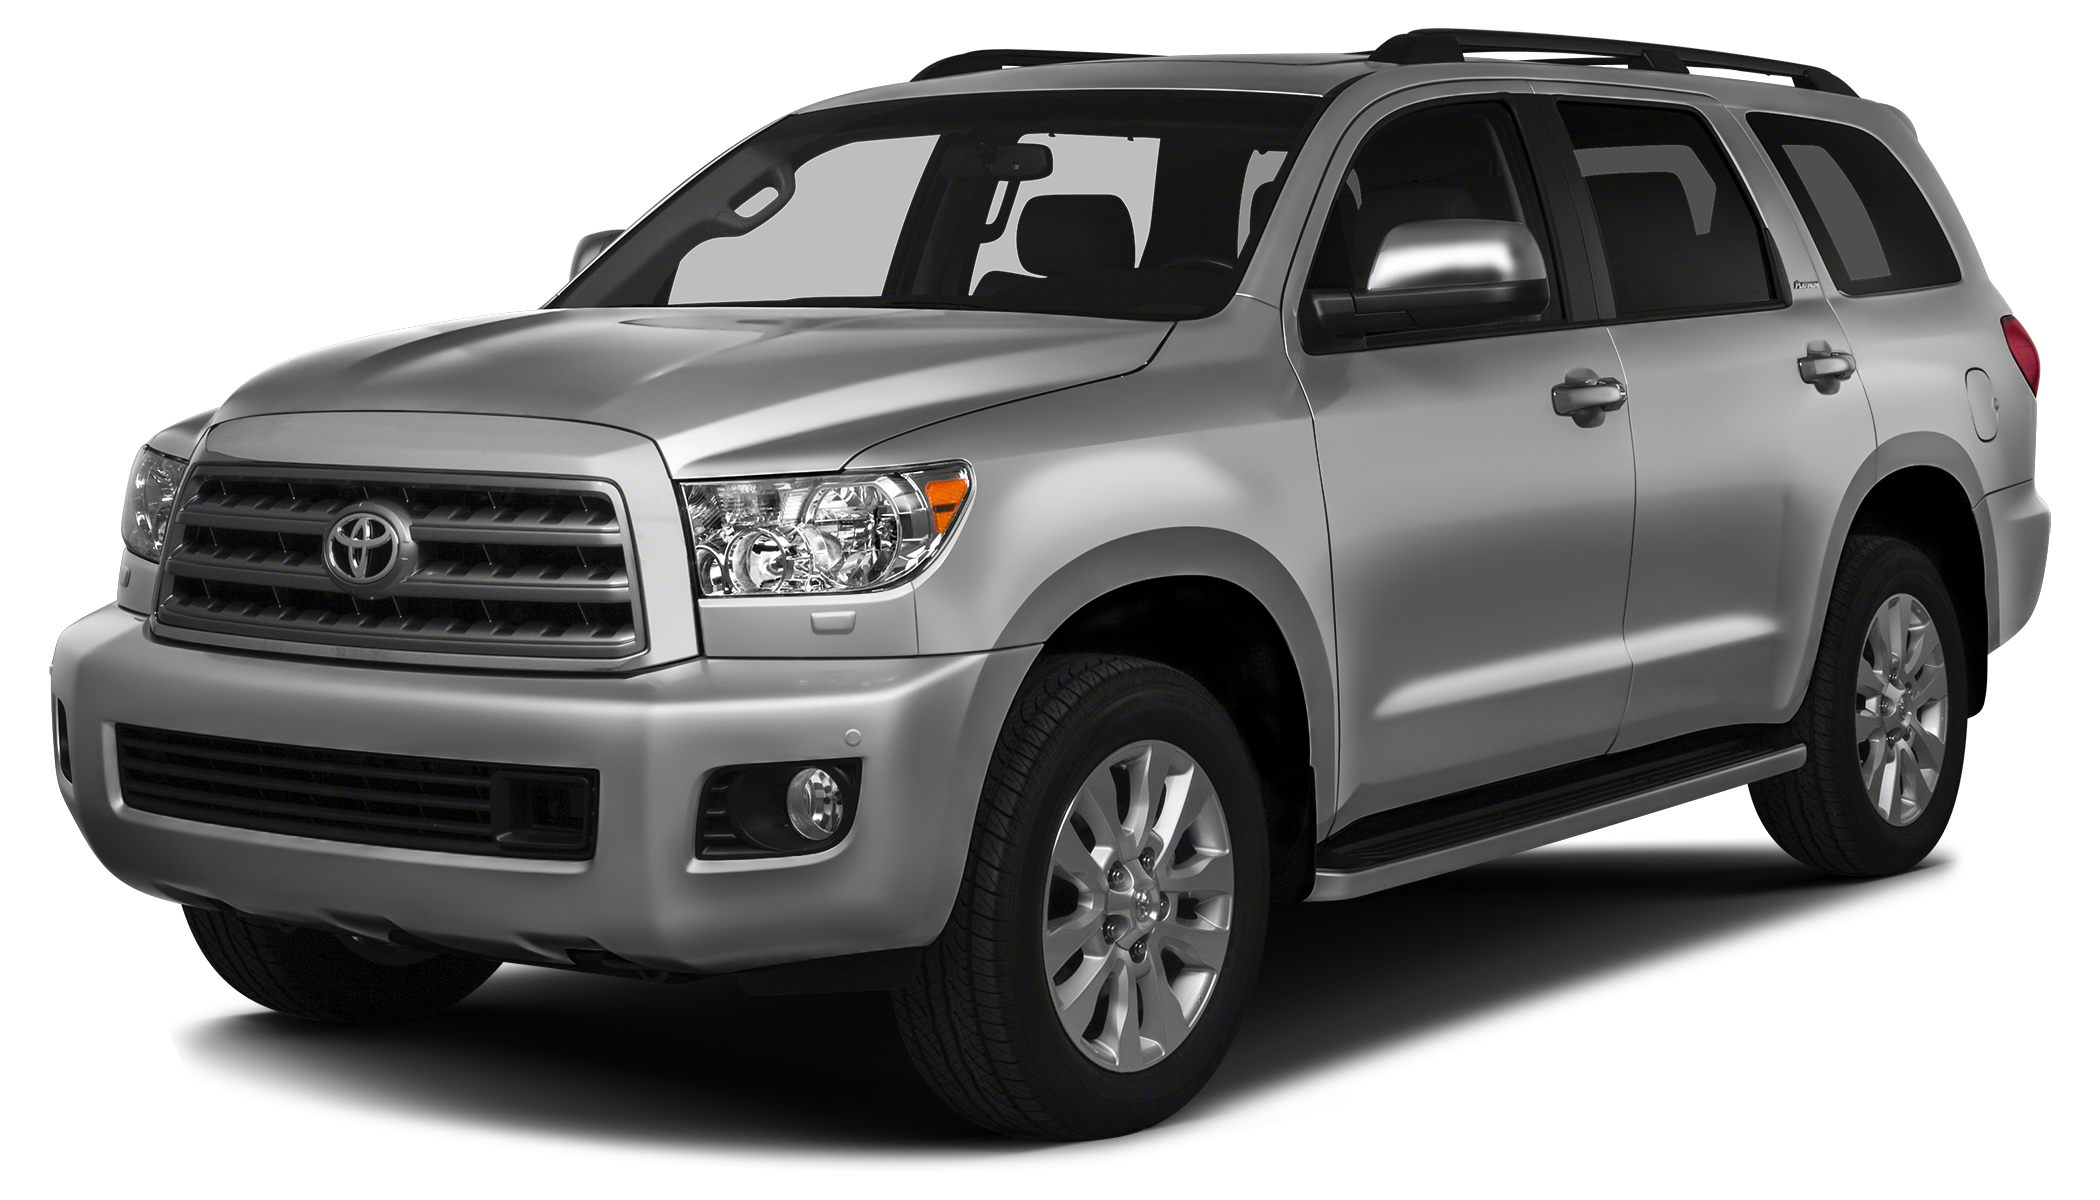 2016 Toyota Sequoia SR5 If you need the people hauling and pulling power afforded by a large SUV